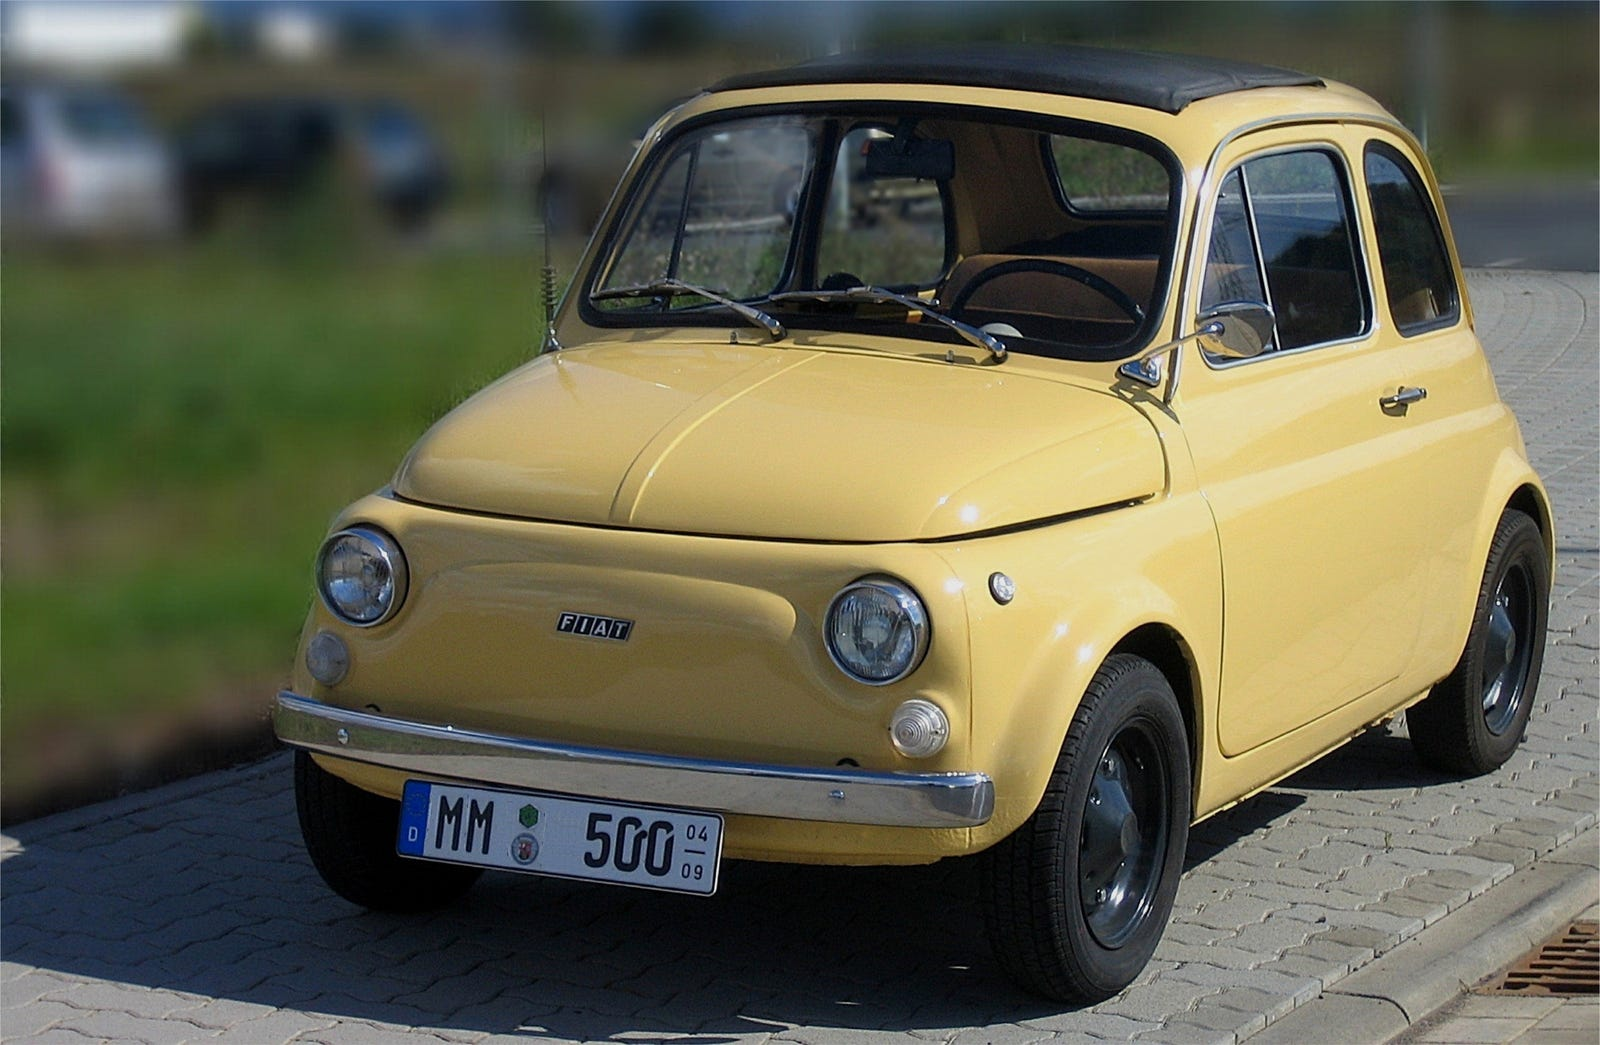 The easiest tell for a FIAT 500R is the front and rear badge - they look similar to the 500F otherwise, but the R features the more modern FIAT badge on its nose.